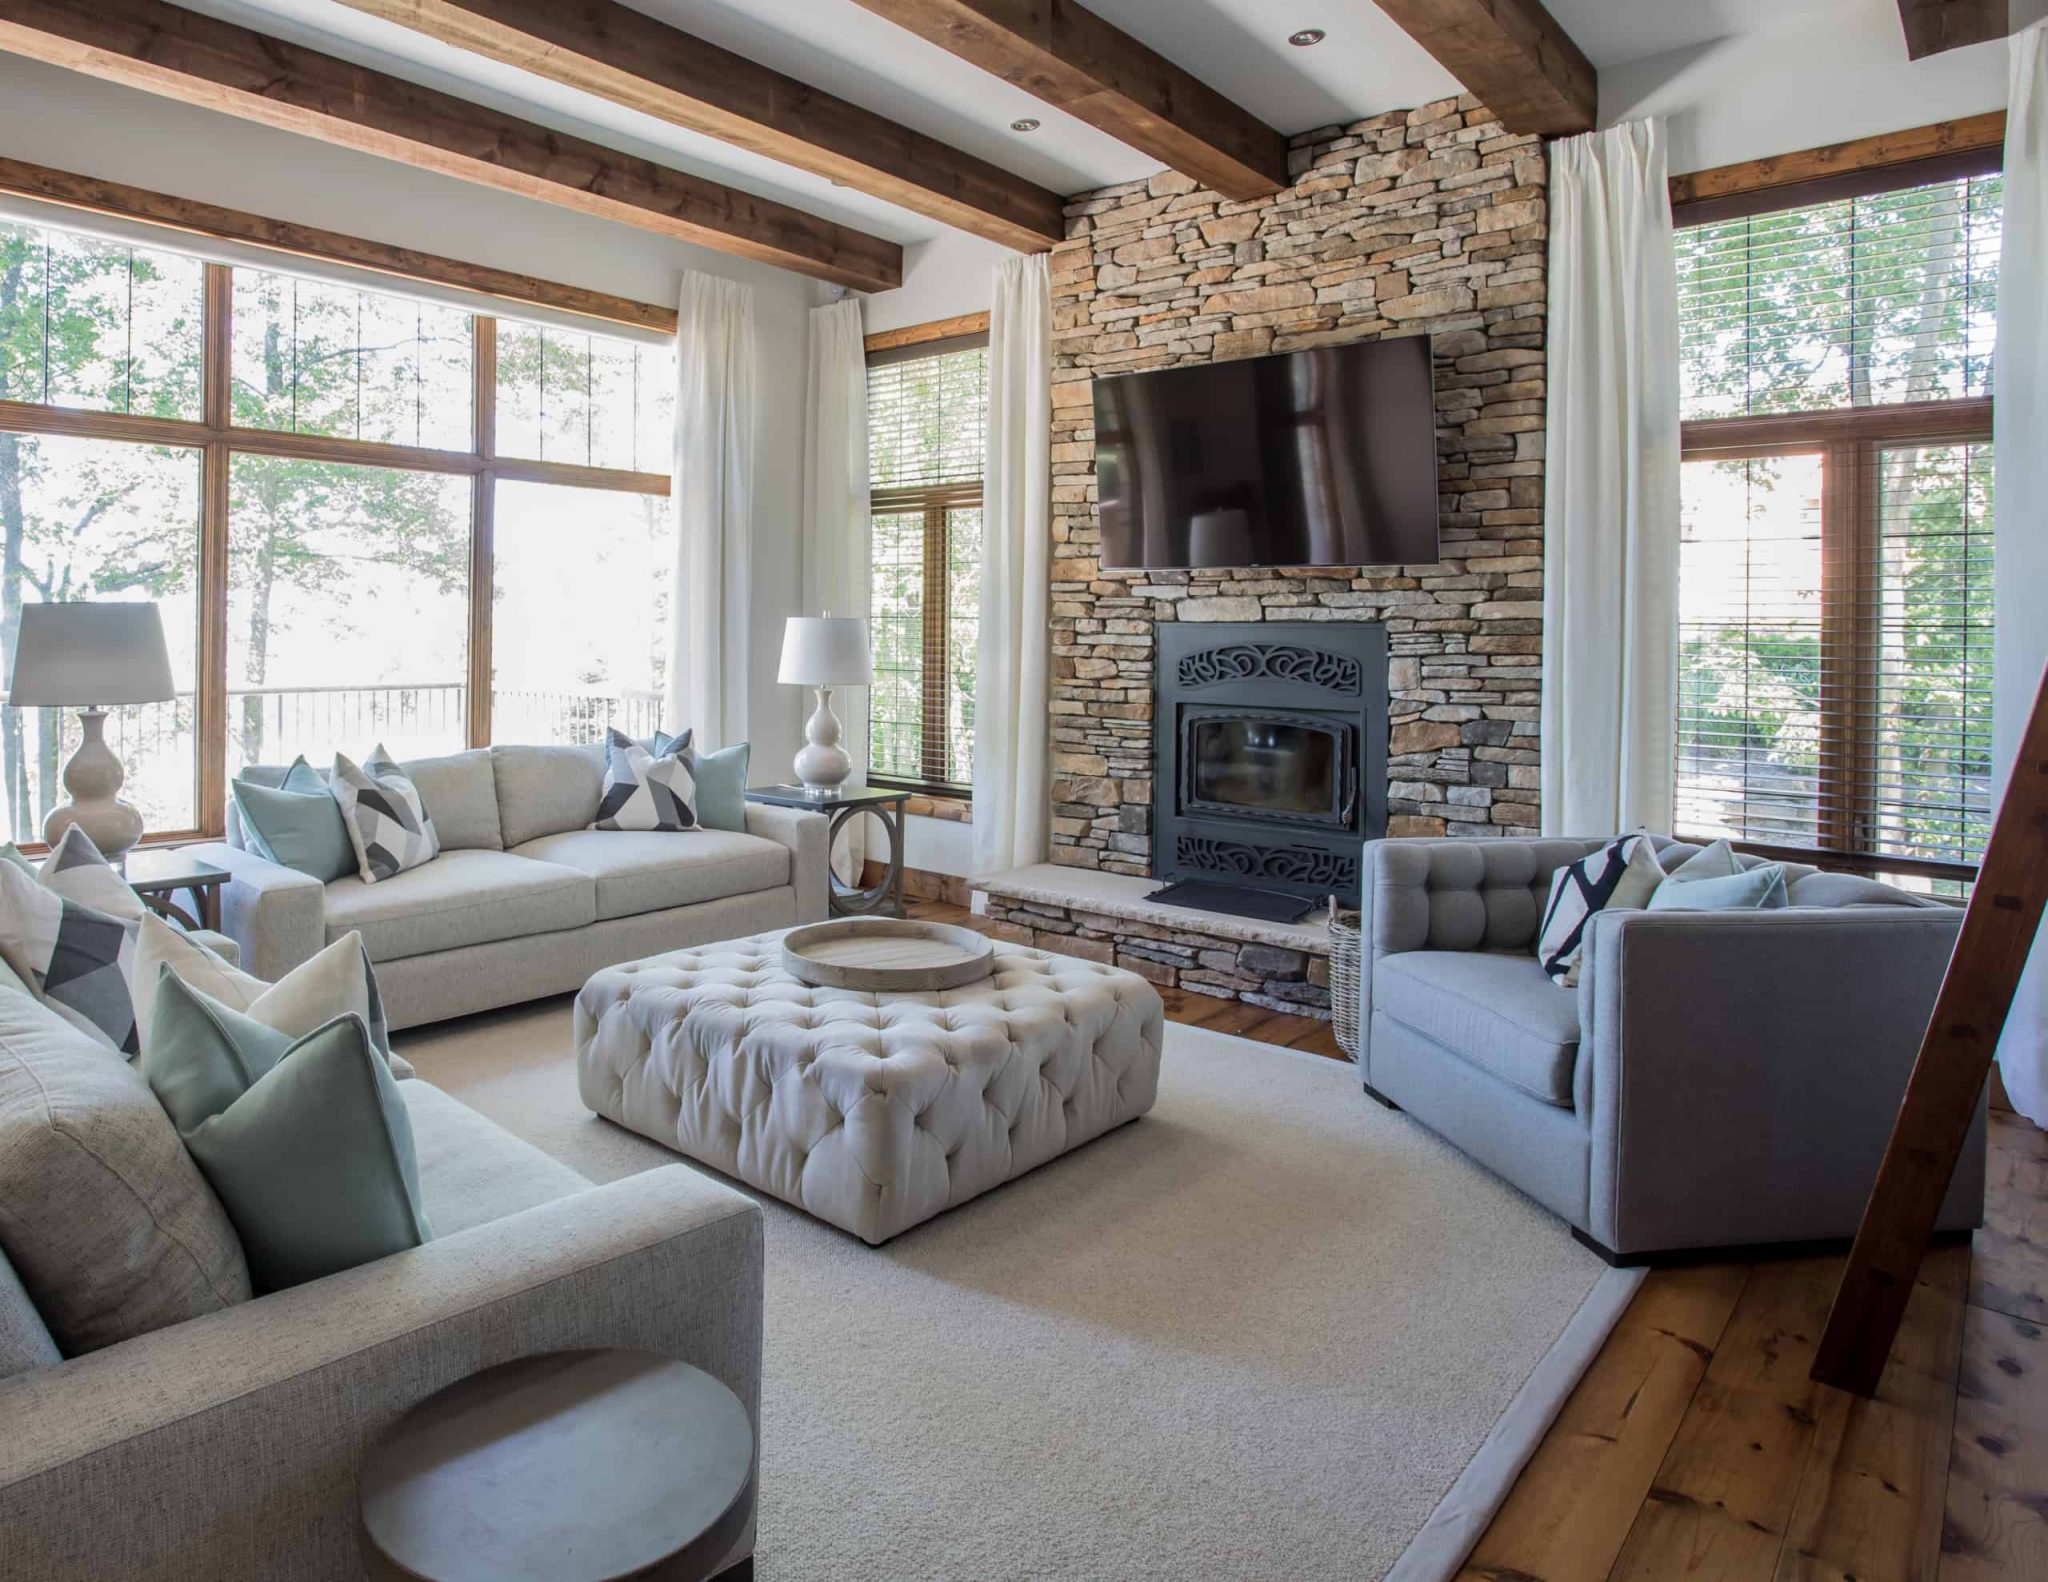 Cozy living room with windows covering the walls